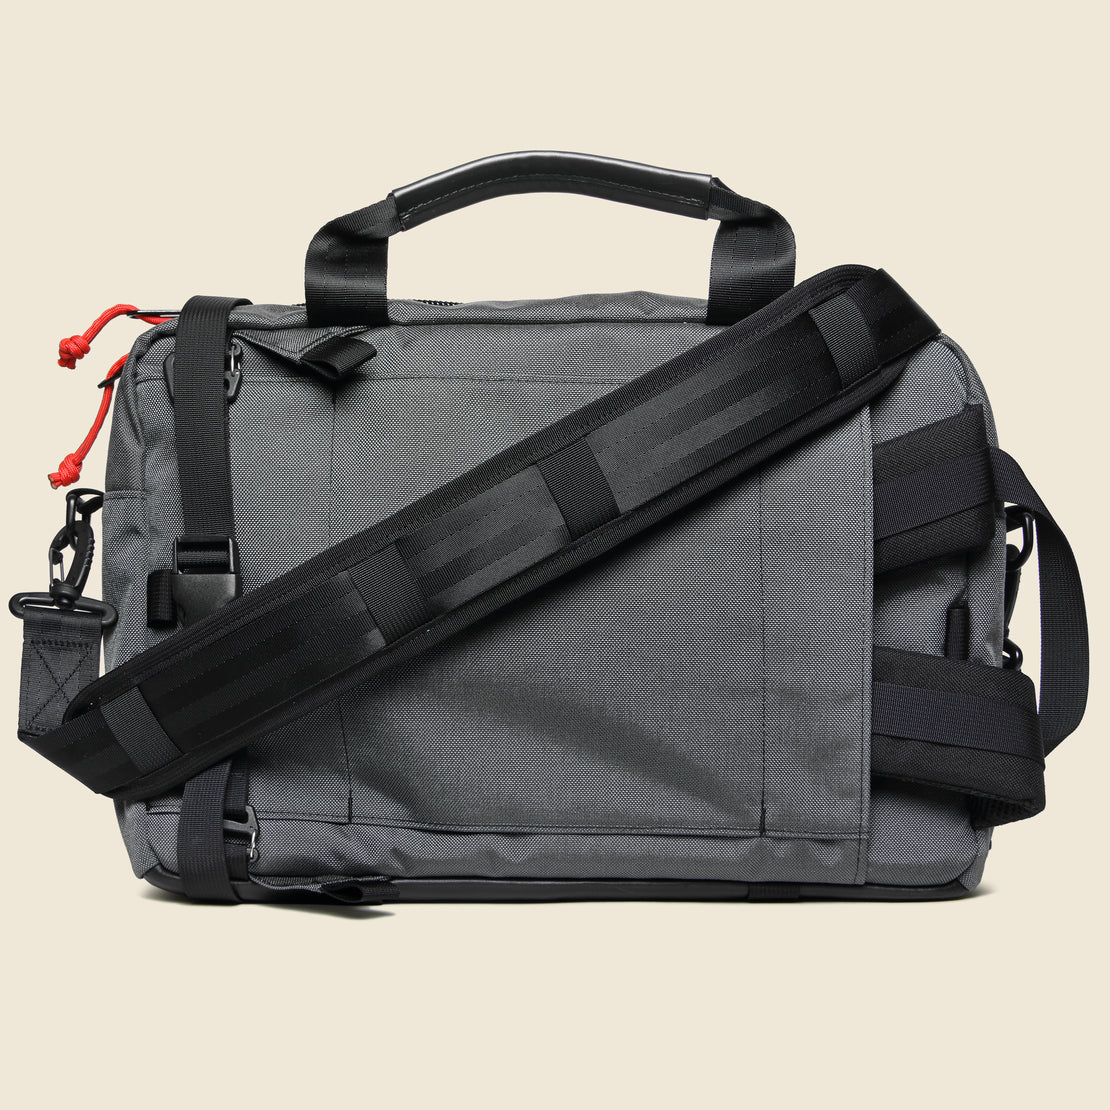 Commuter Briefcase - Charcoal/Black Leather